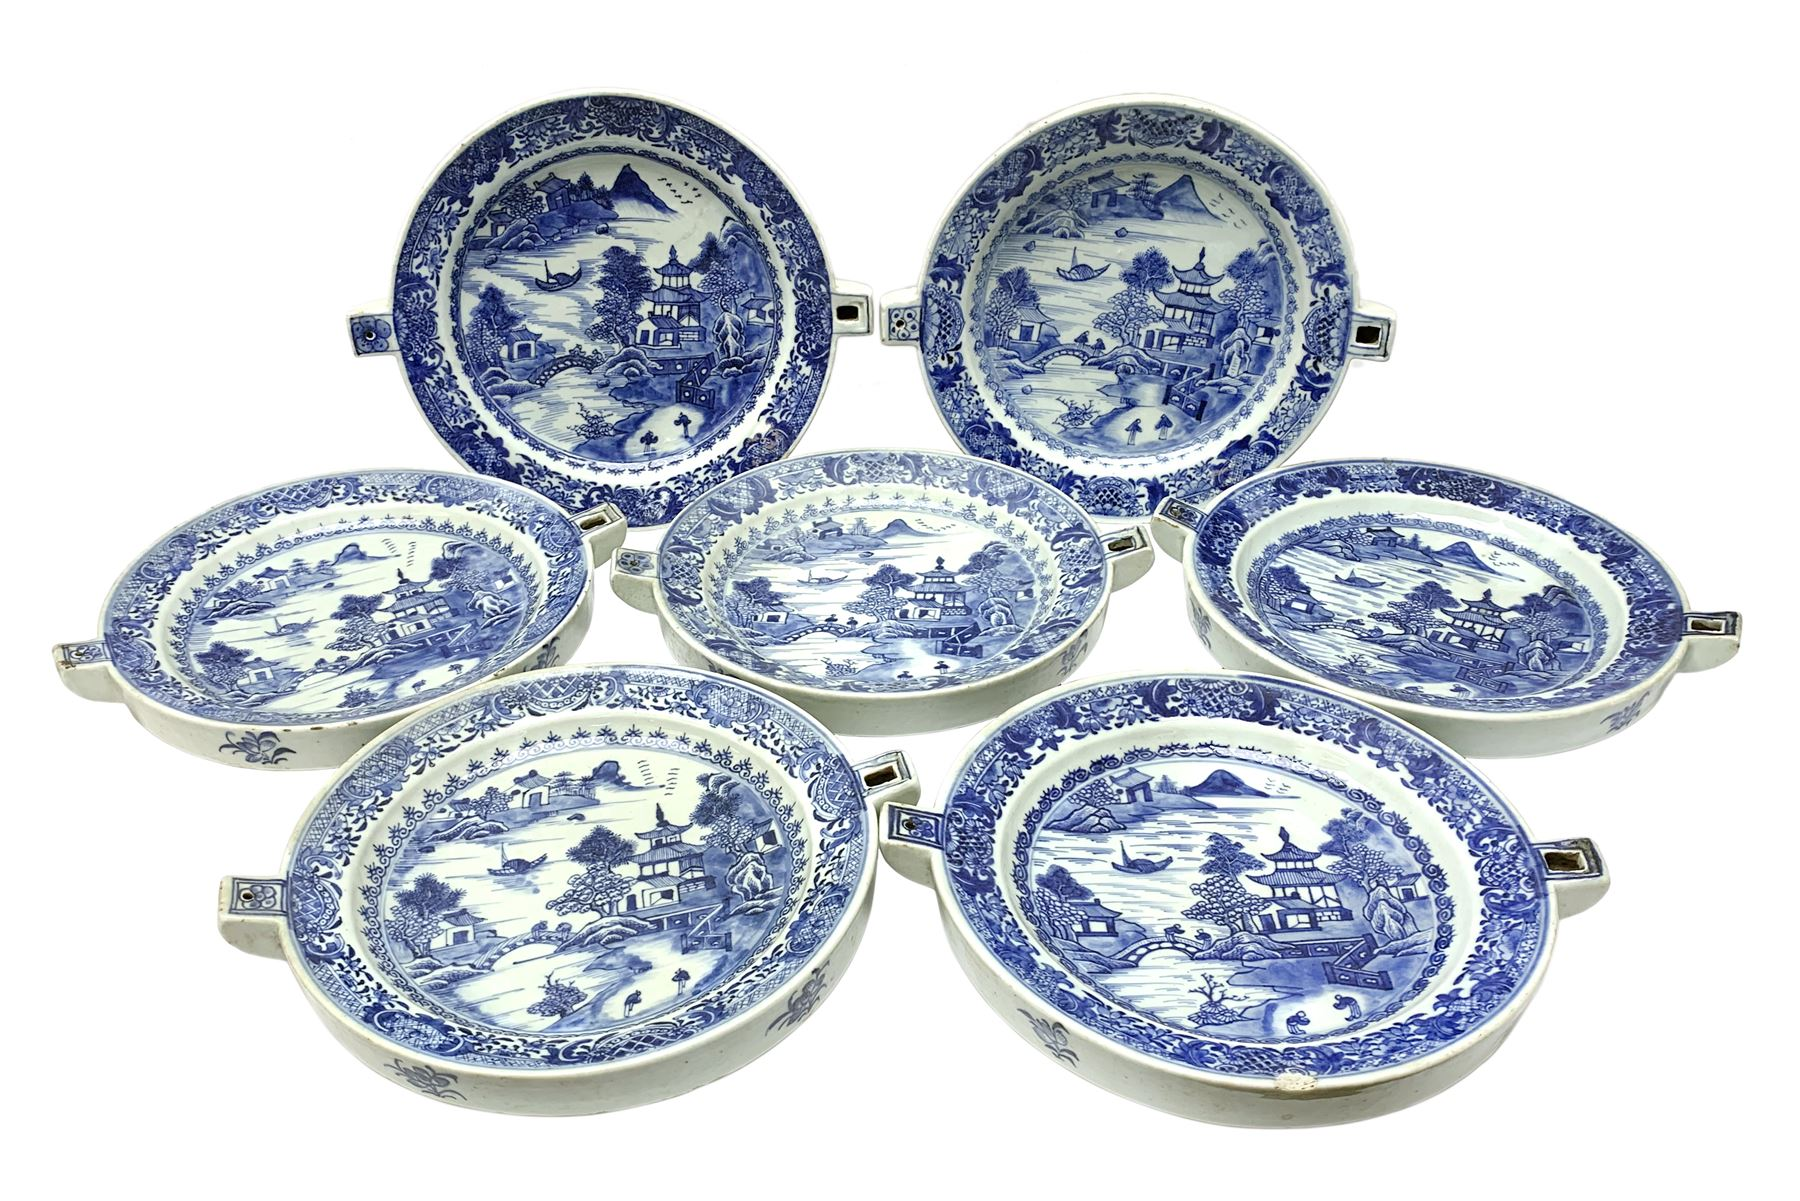 Set of seven late 18th/early 19th century Chinese export blue and white hot water plates